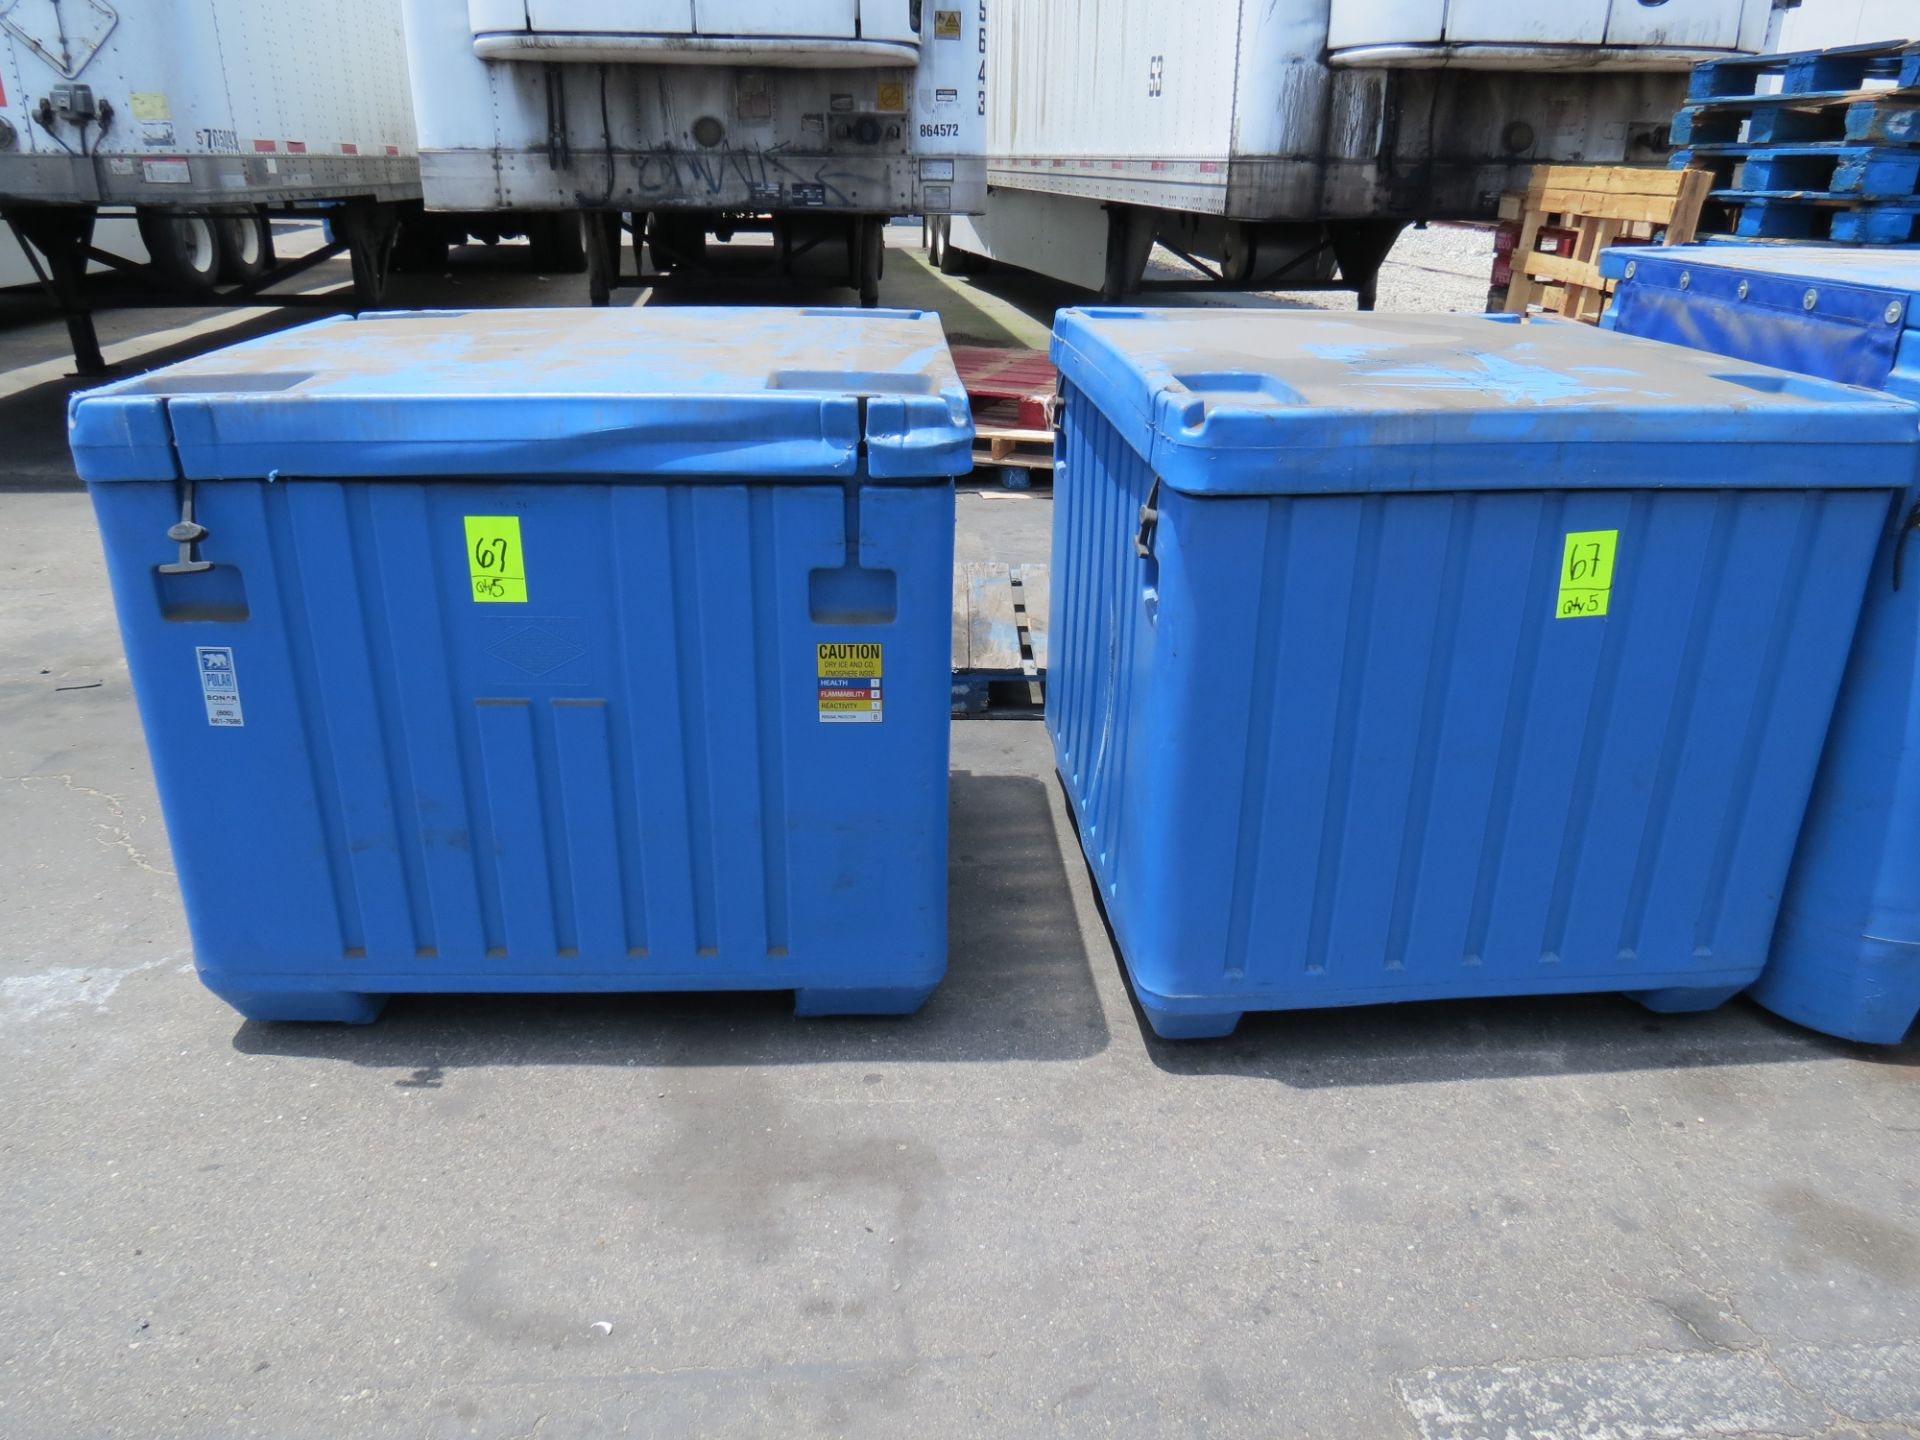 Lotto 67 - Bonar Polar Insulated Plastic Shipping Containers Blue